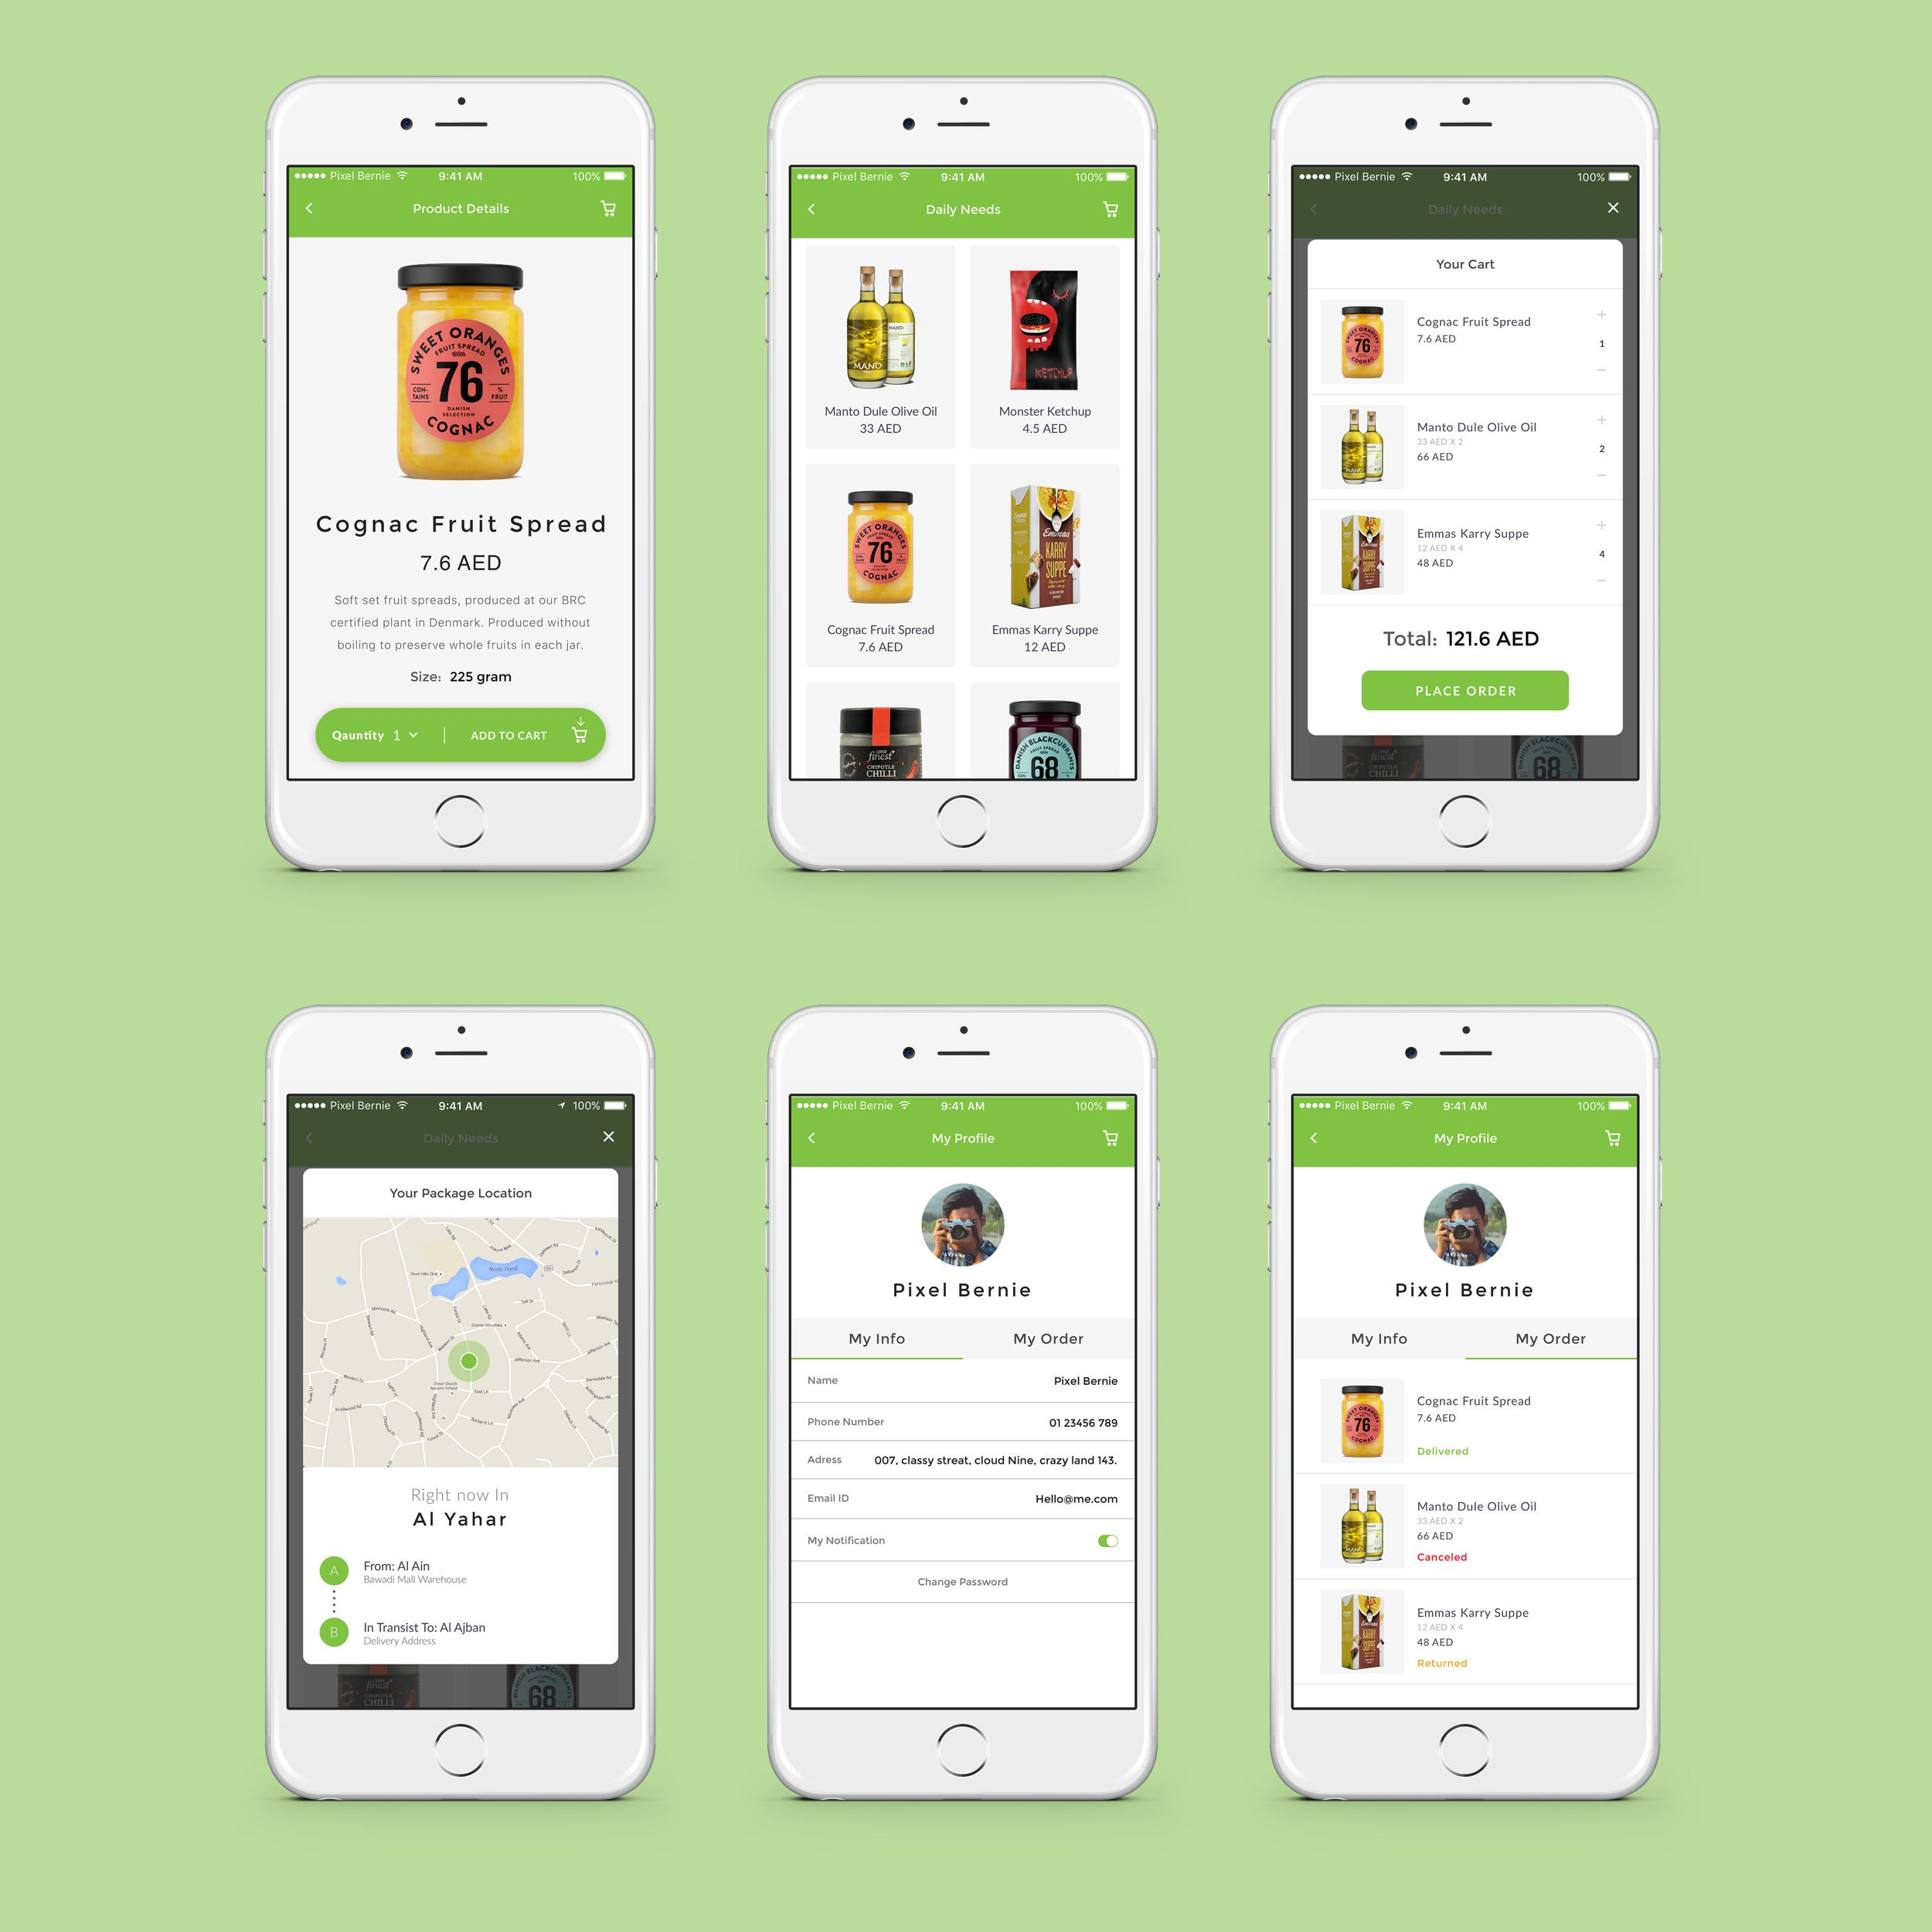 E commerce app design for grocery shopping.